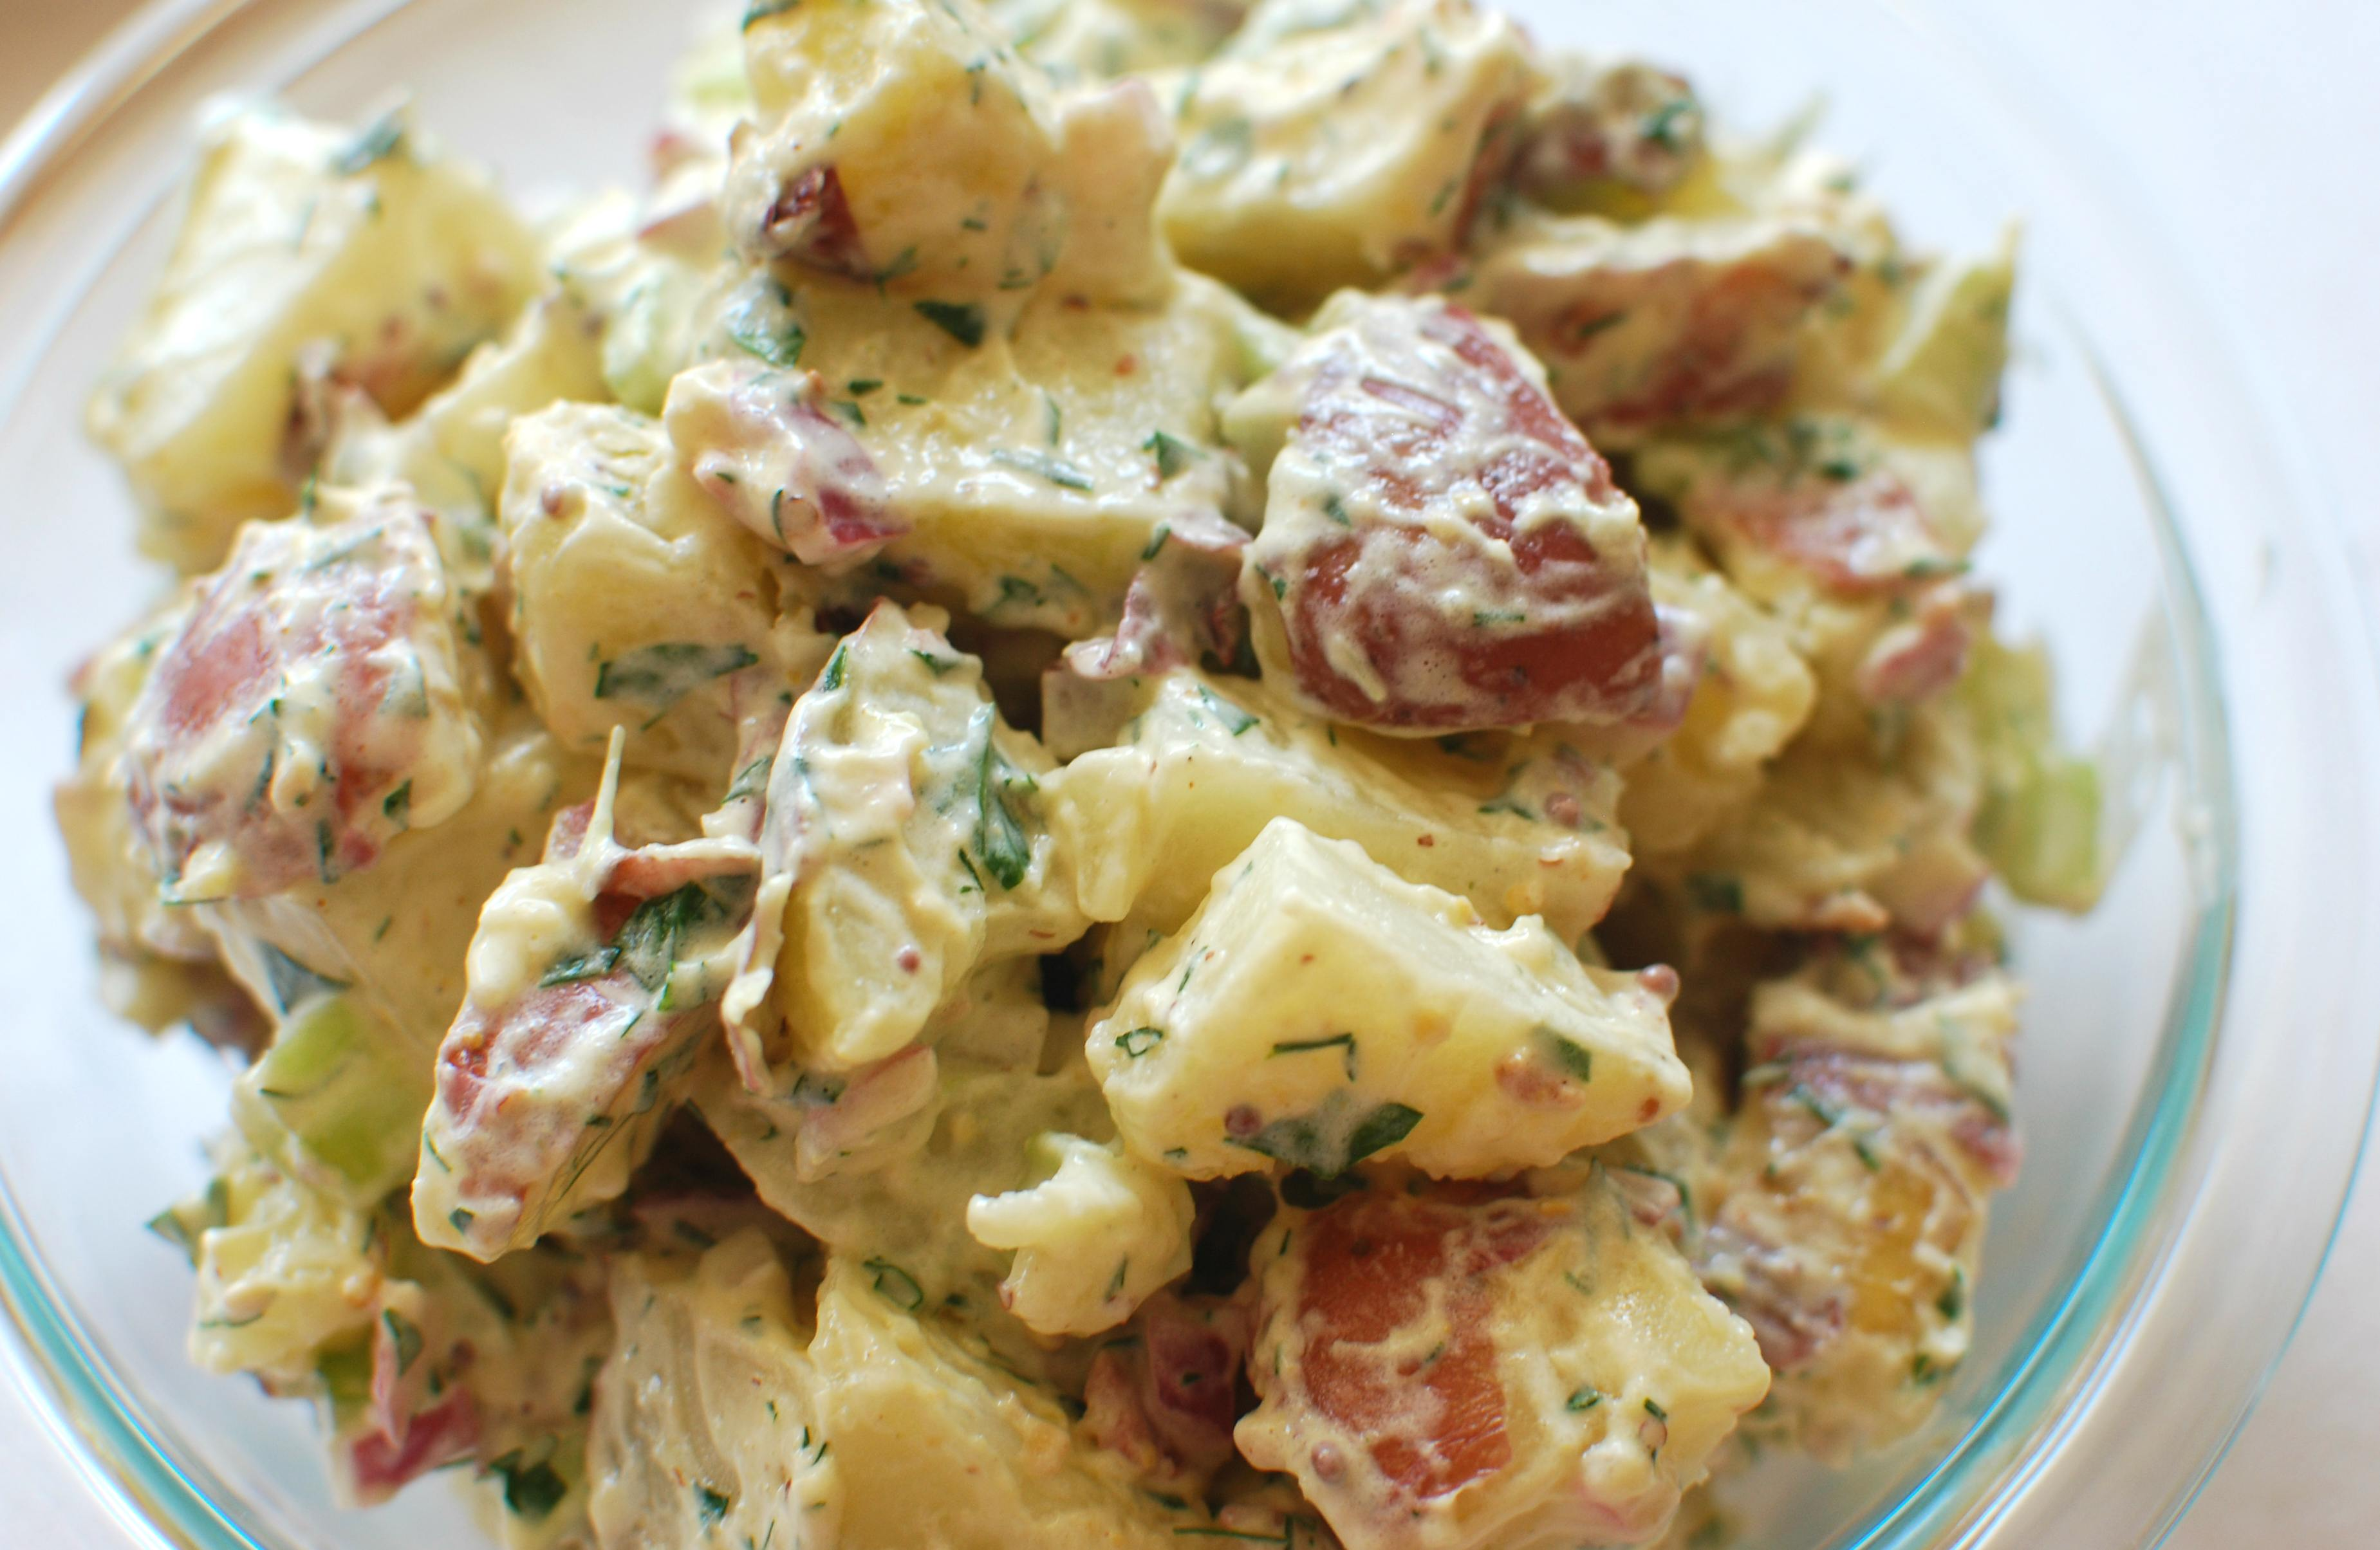 Potato Salad Recipe With Bacon And Dill